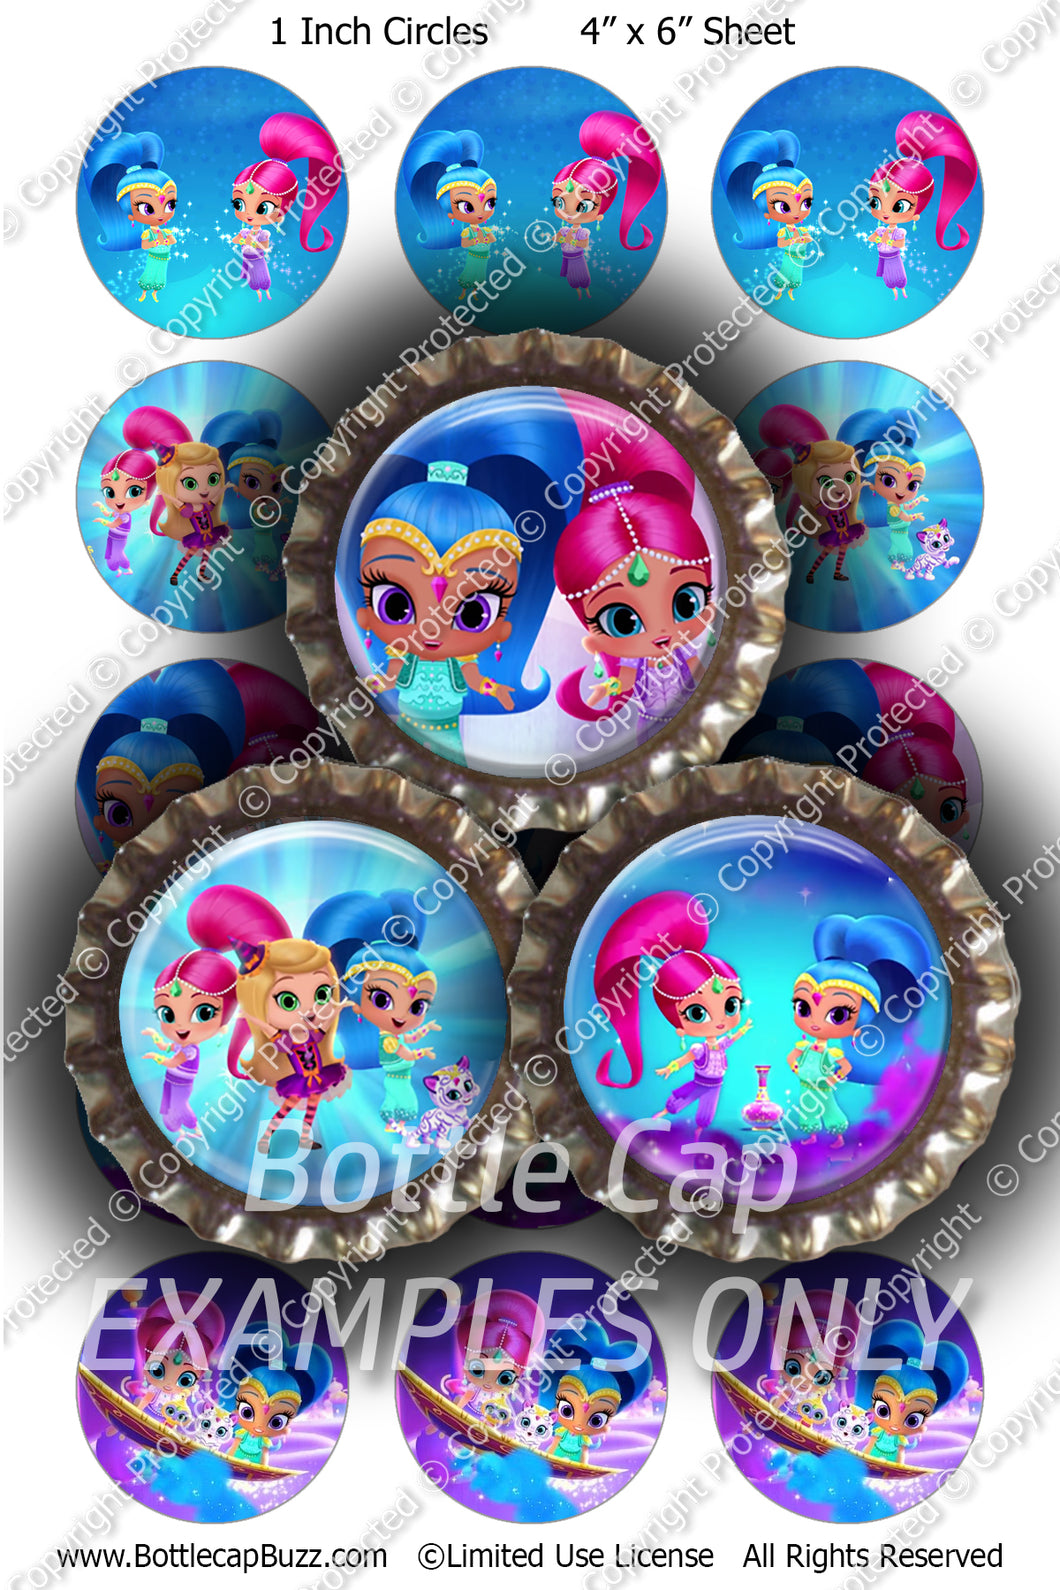 Digital Bottle Cap Images - Shimmer & Shine 1 Collage Sheet (R1110) 1 Inch Circles for Bottlecaps, Magnets, Jewelry, Hairbows, Buttons15